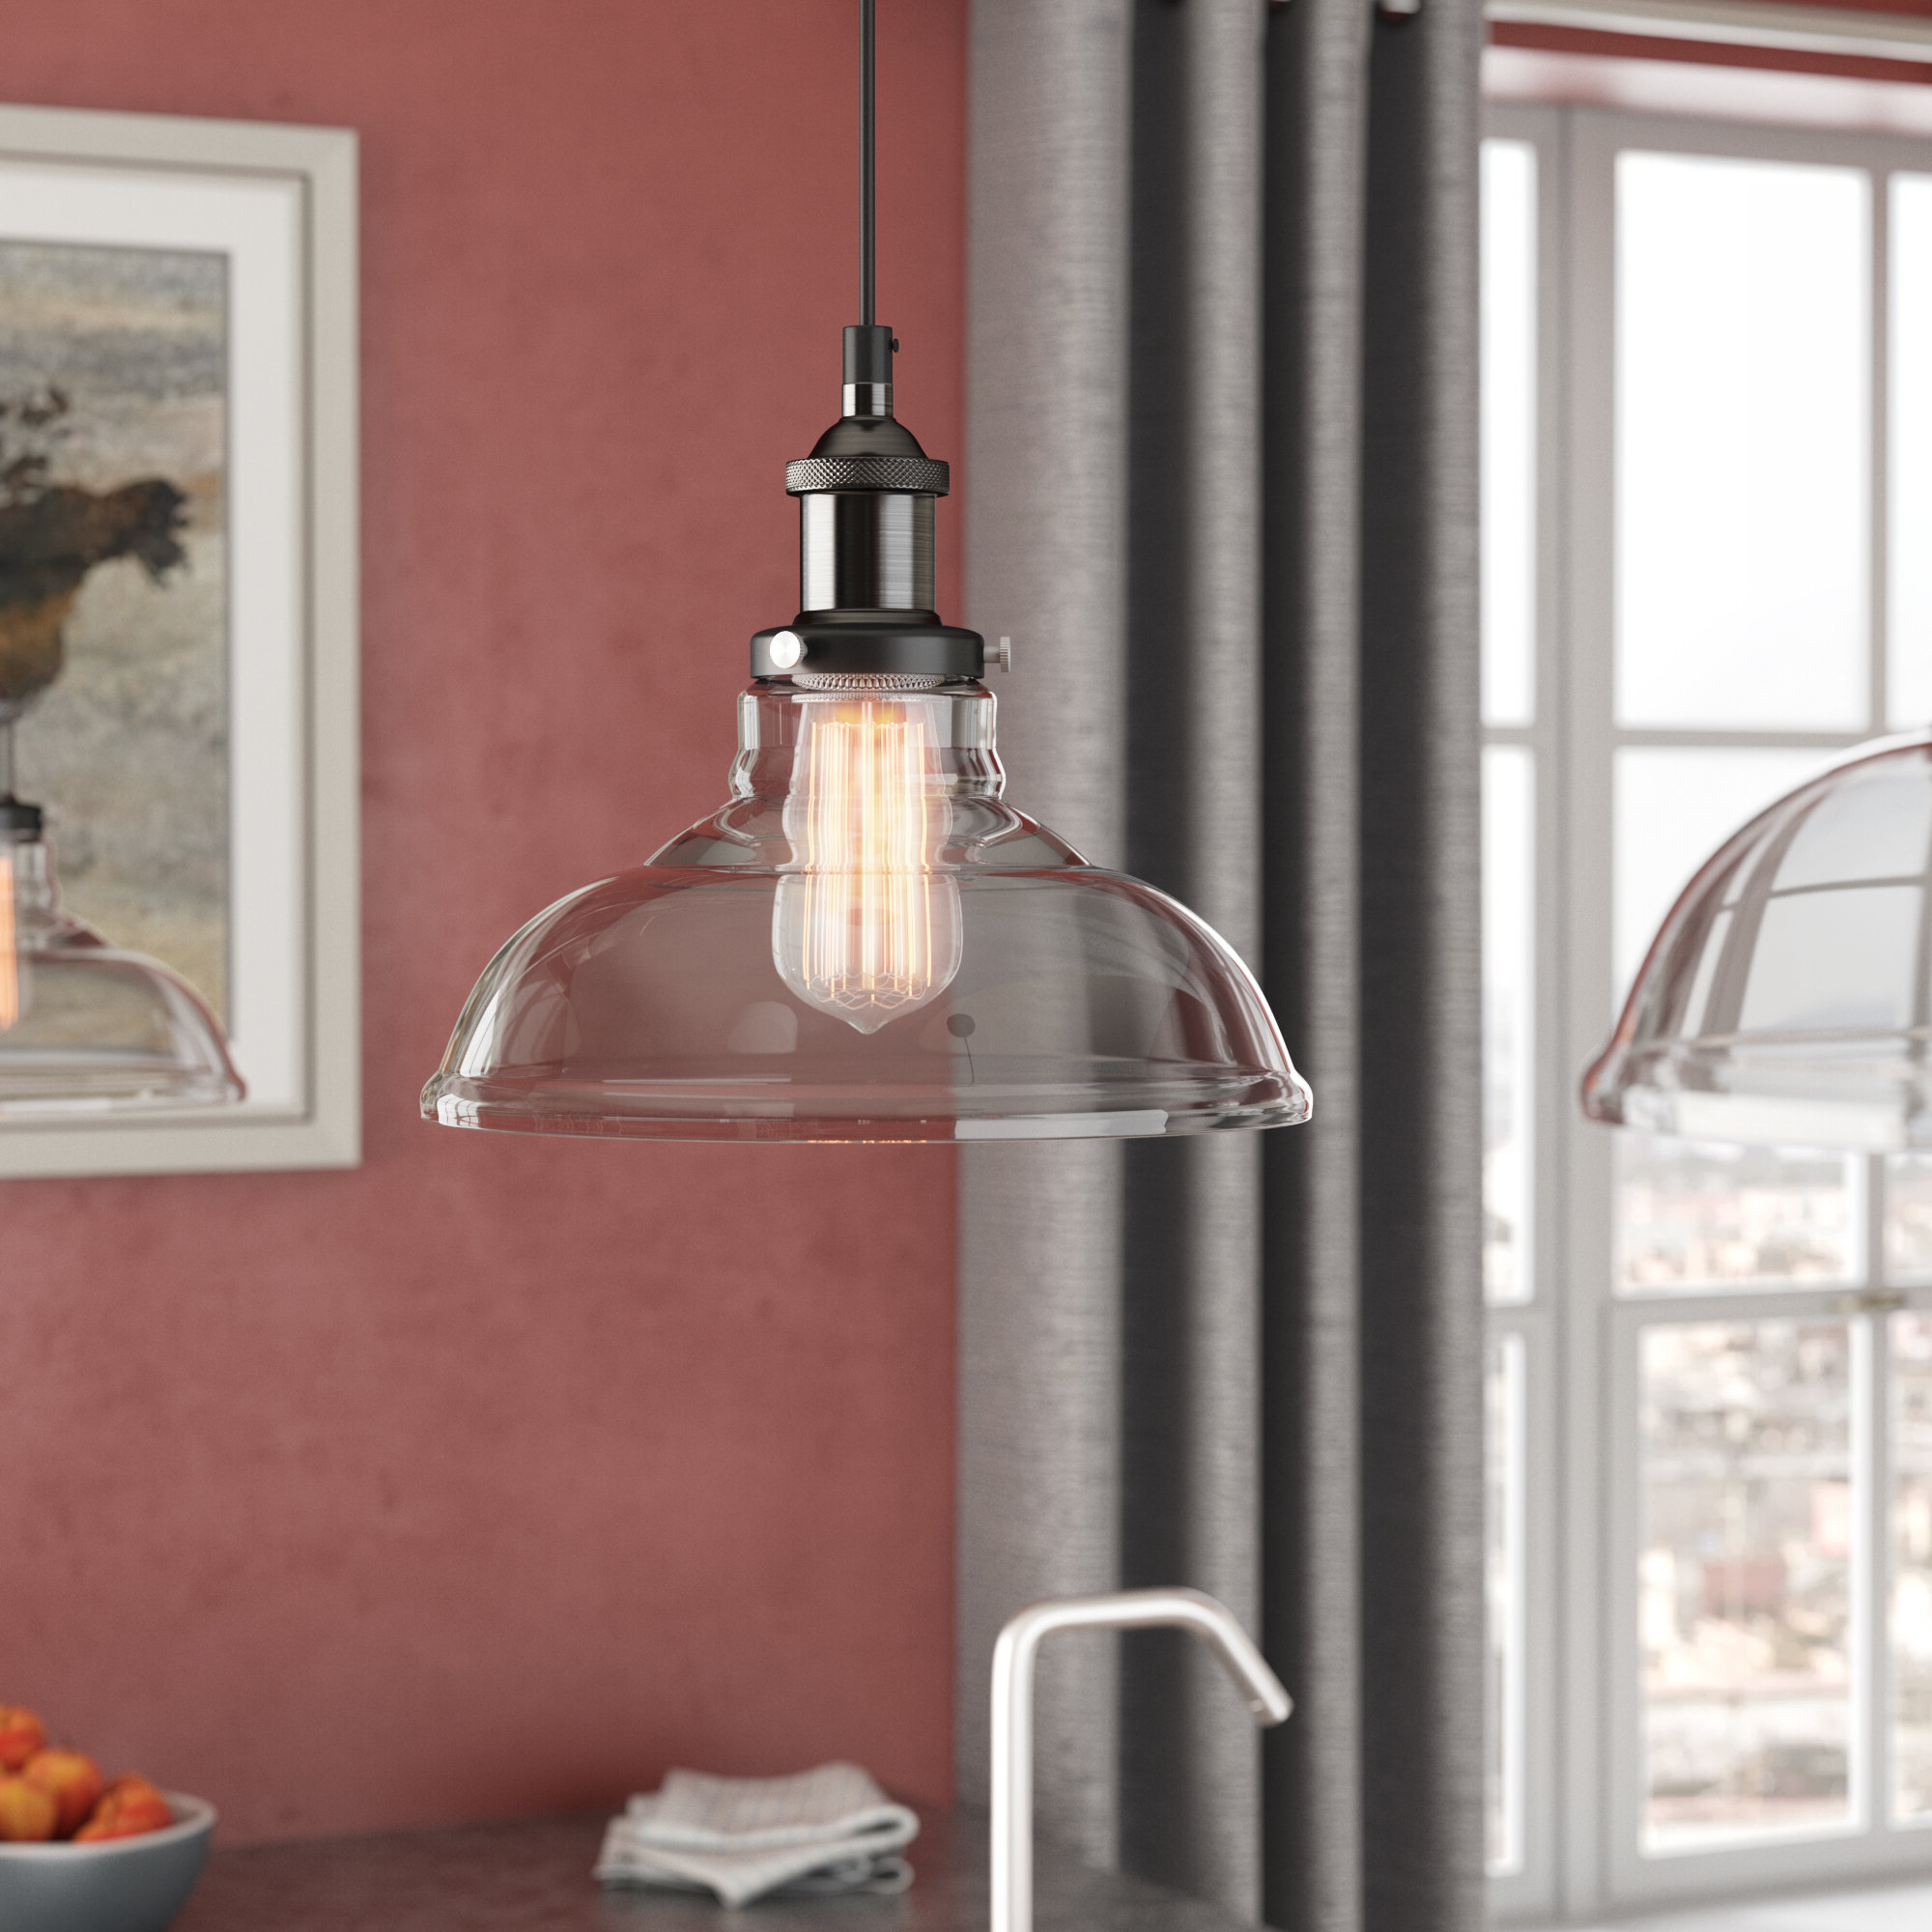 Fresno Dome 1 Light Bell Pendants With Regard To Trendy Newlyn 1 Light Dome Pendant (View 13 of 20)